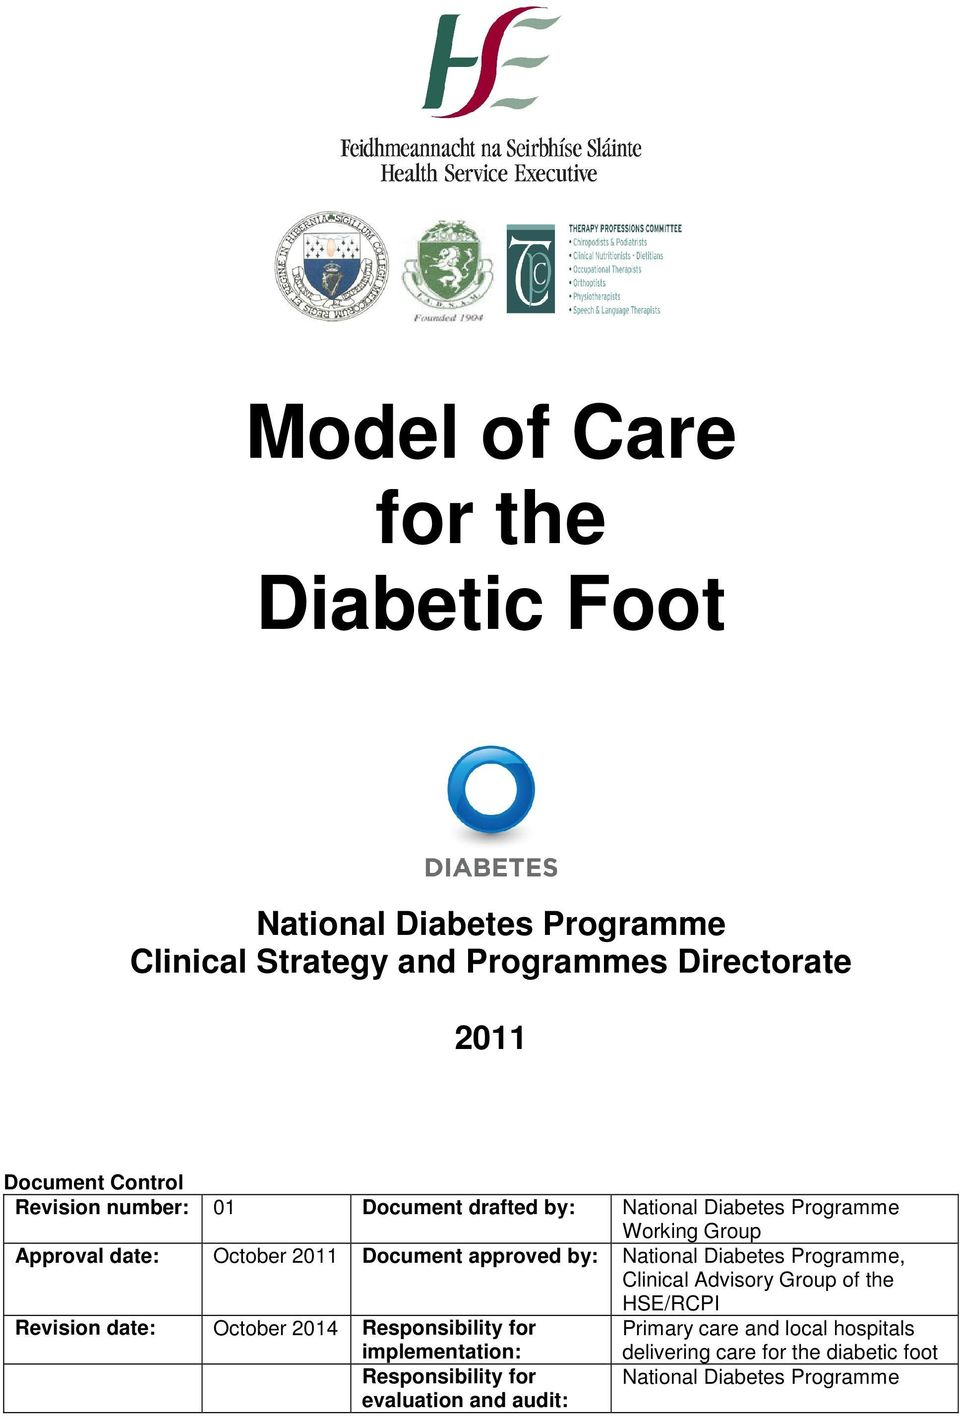 National Diabetes Programme, Clinical Advisory Group of the HSE/RCPI Revision date: October 2014 Responsibility for Primary care and